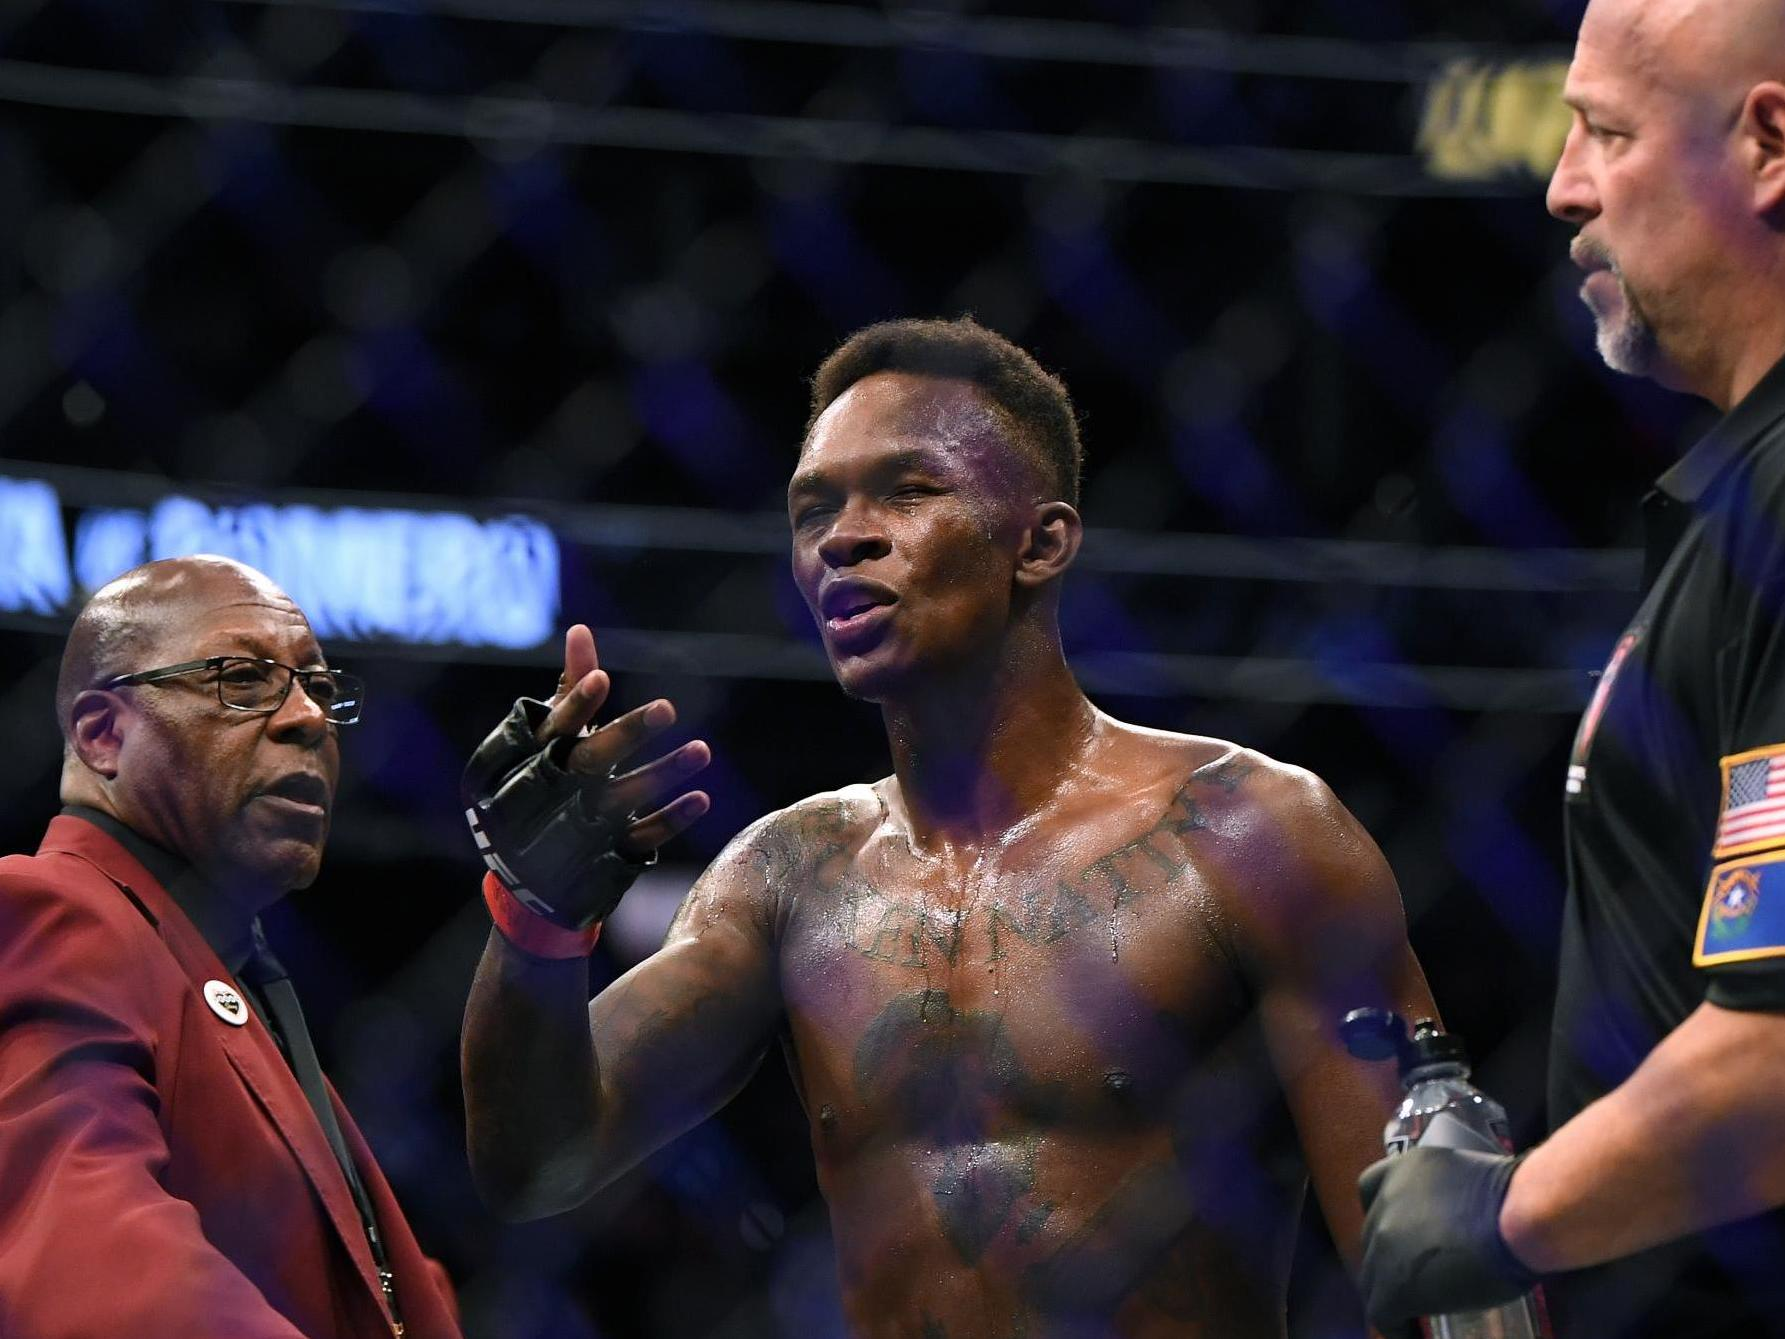 UFC champion Israel Adesanya speaks at protest in New Zealand